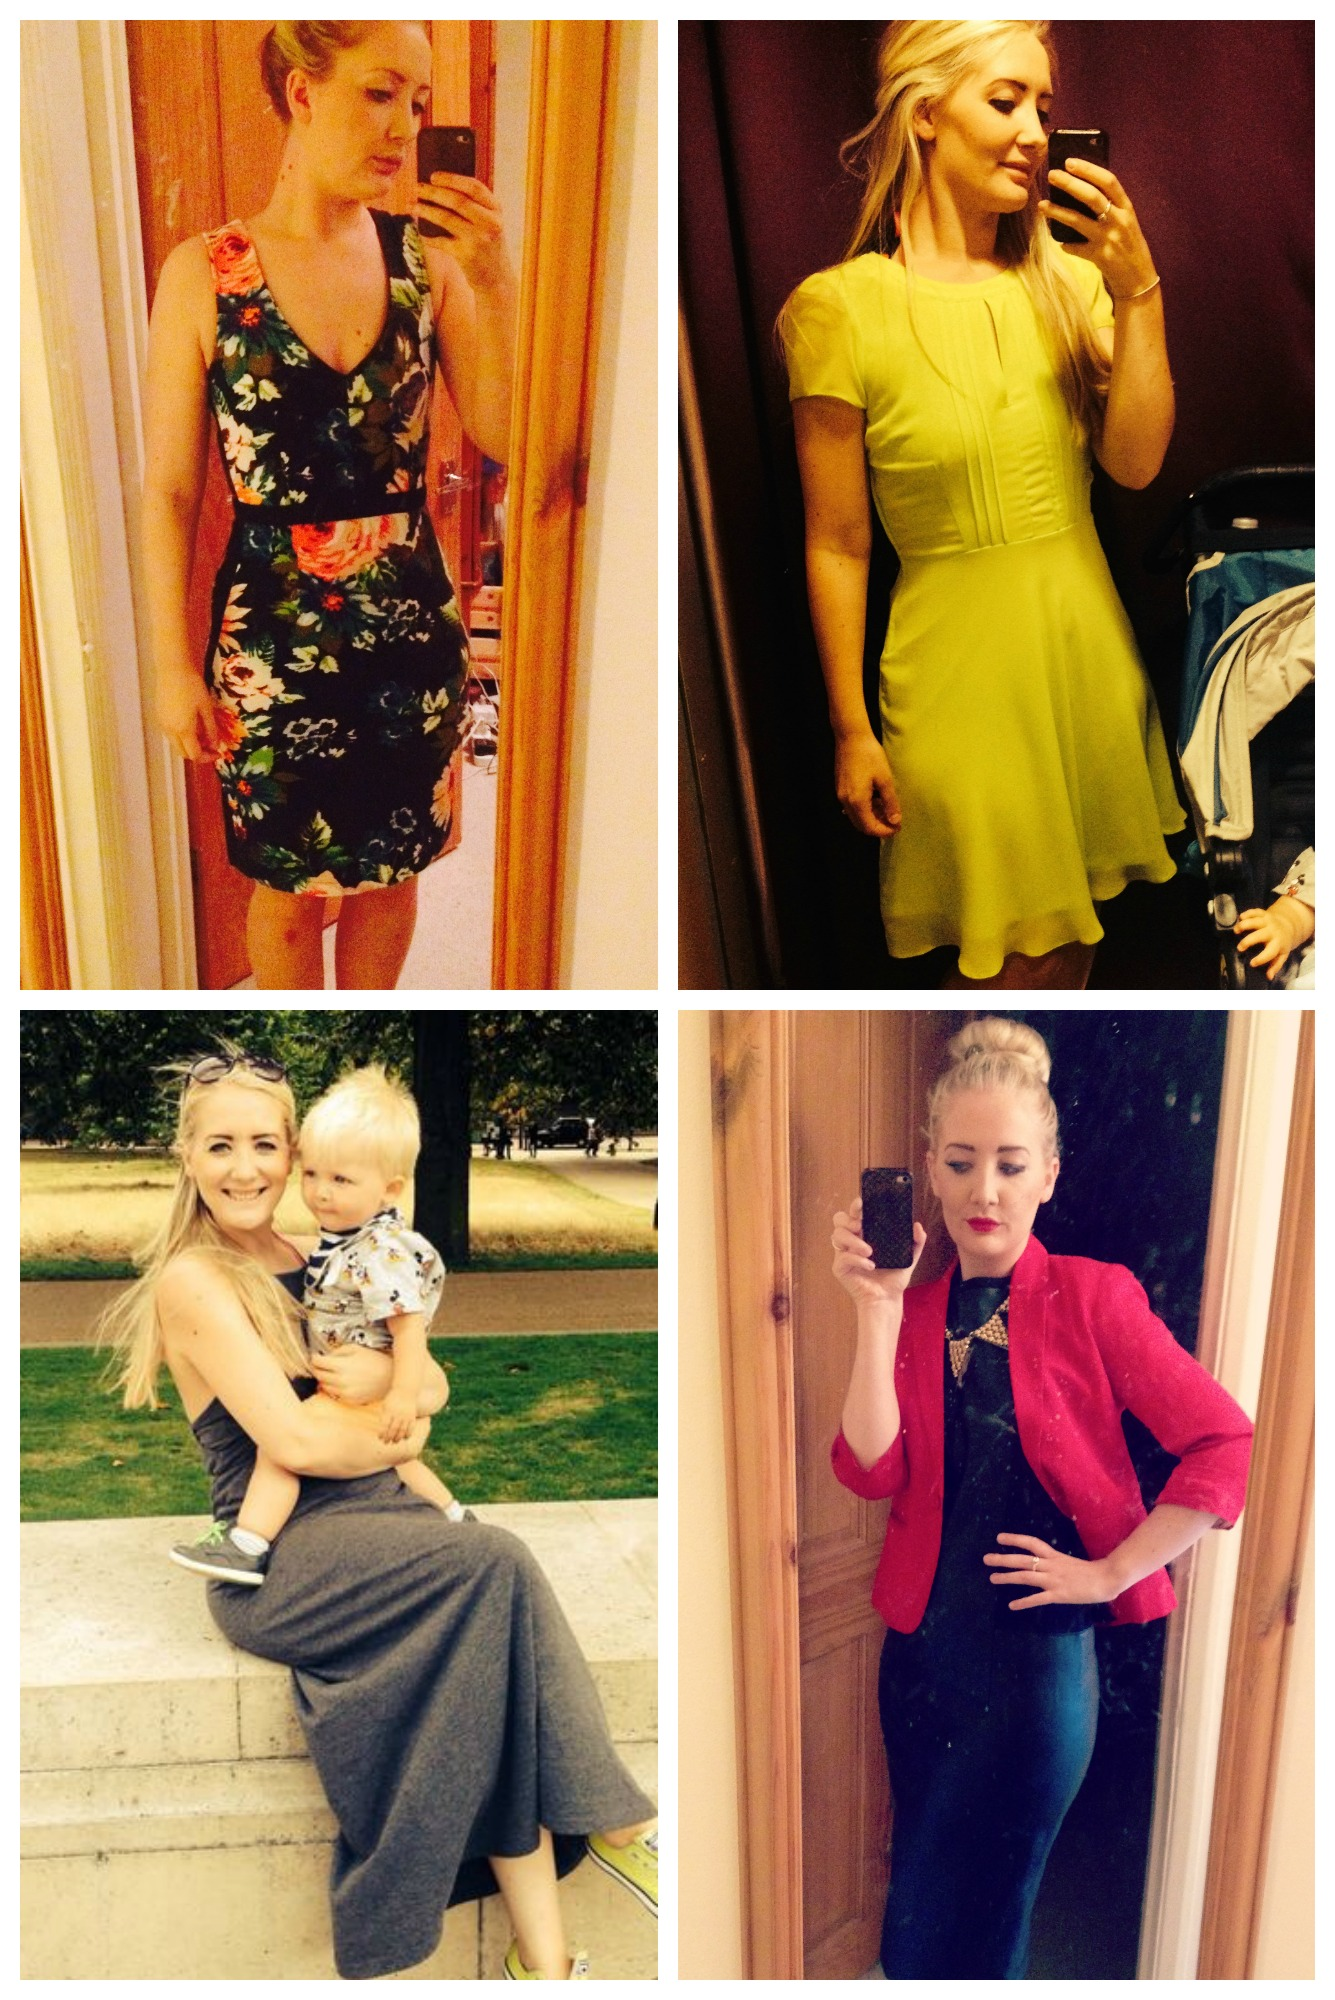 weight-watchers-goal-weight-collage